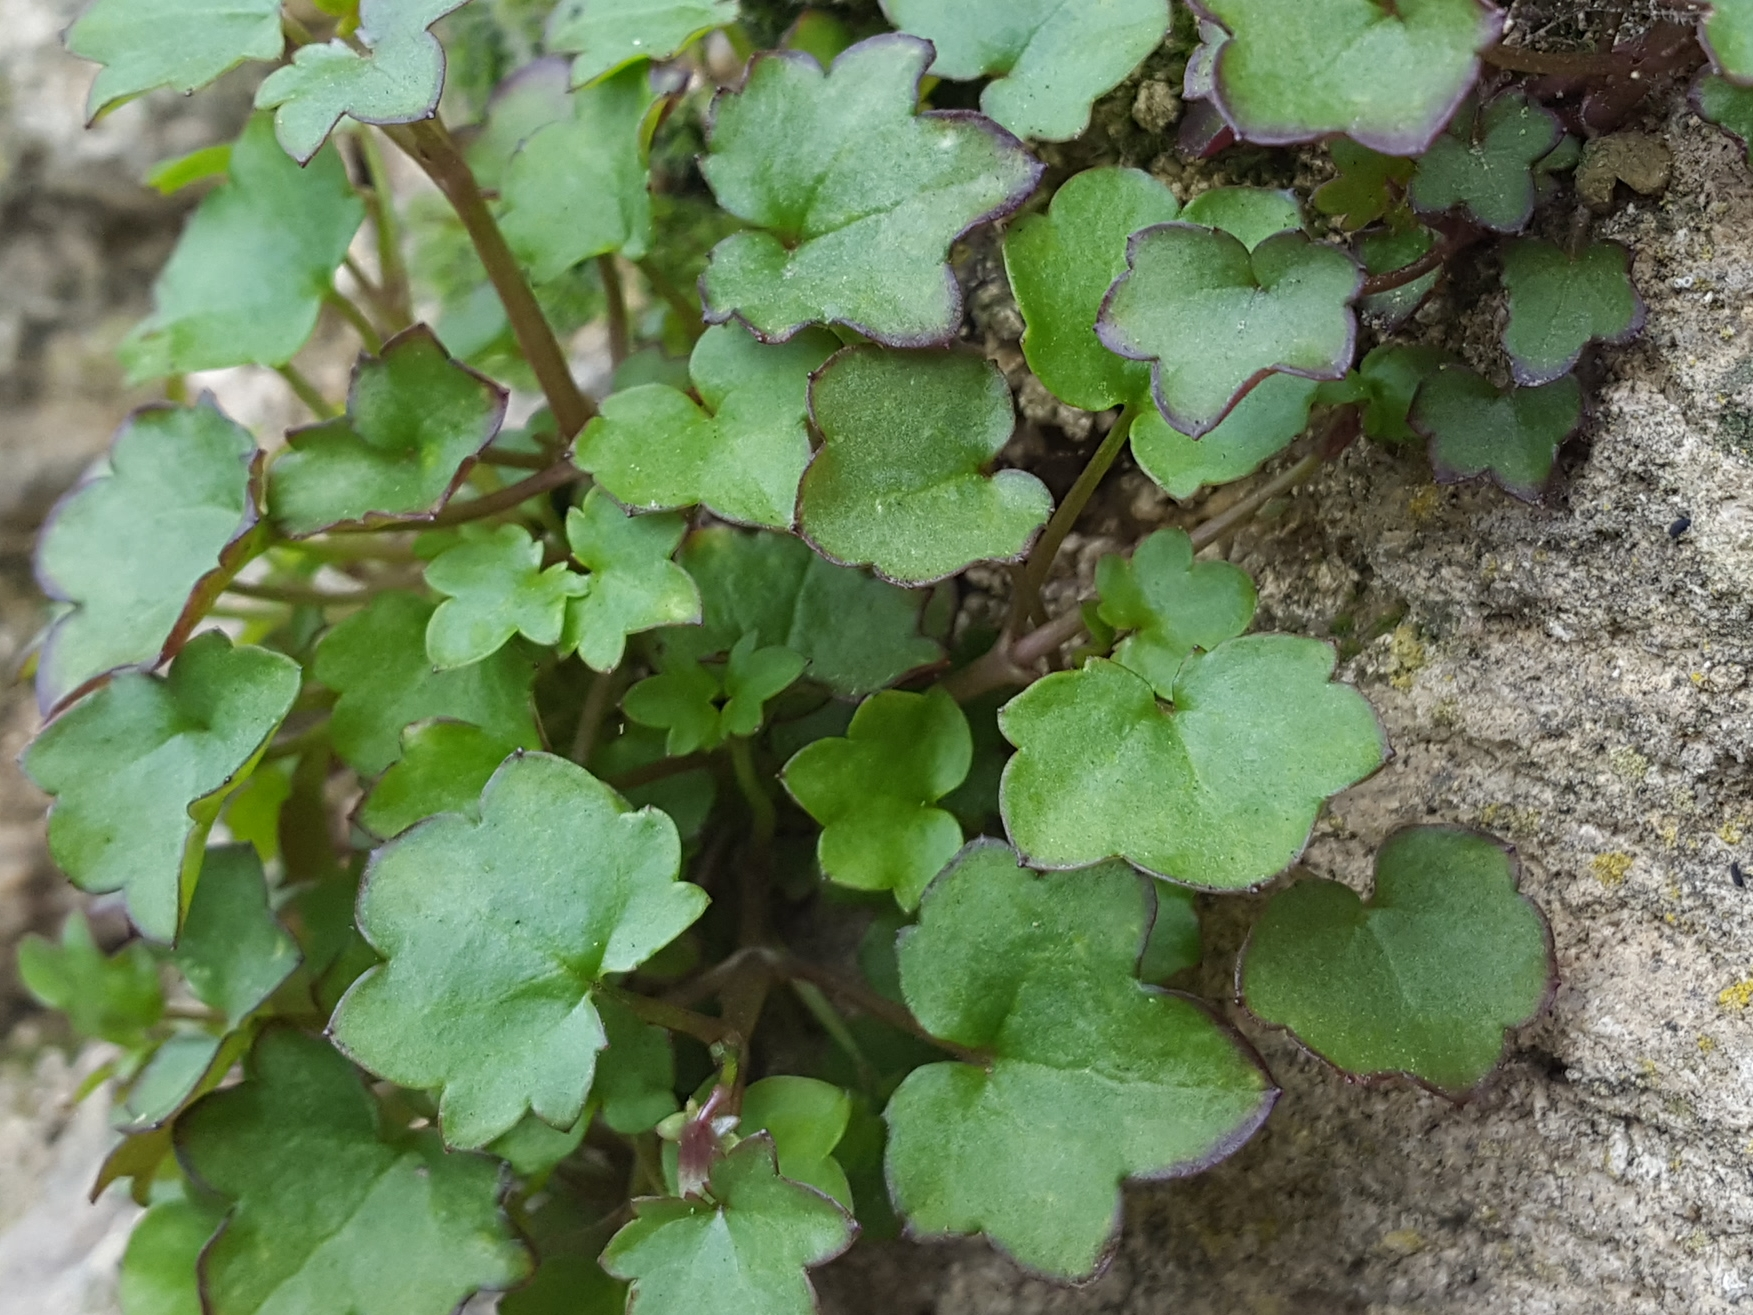 The glossy, thick and hairless leaves have between 3 and 7 leaf lobes.